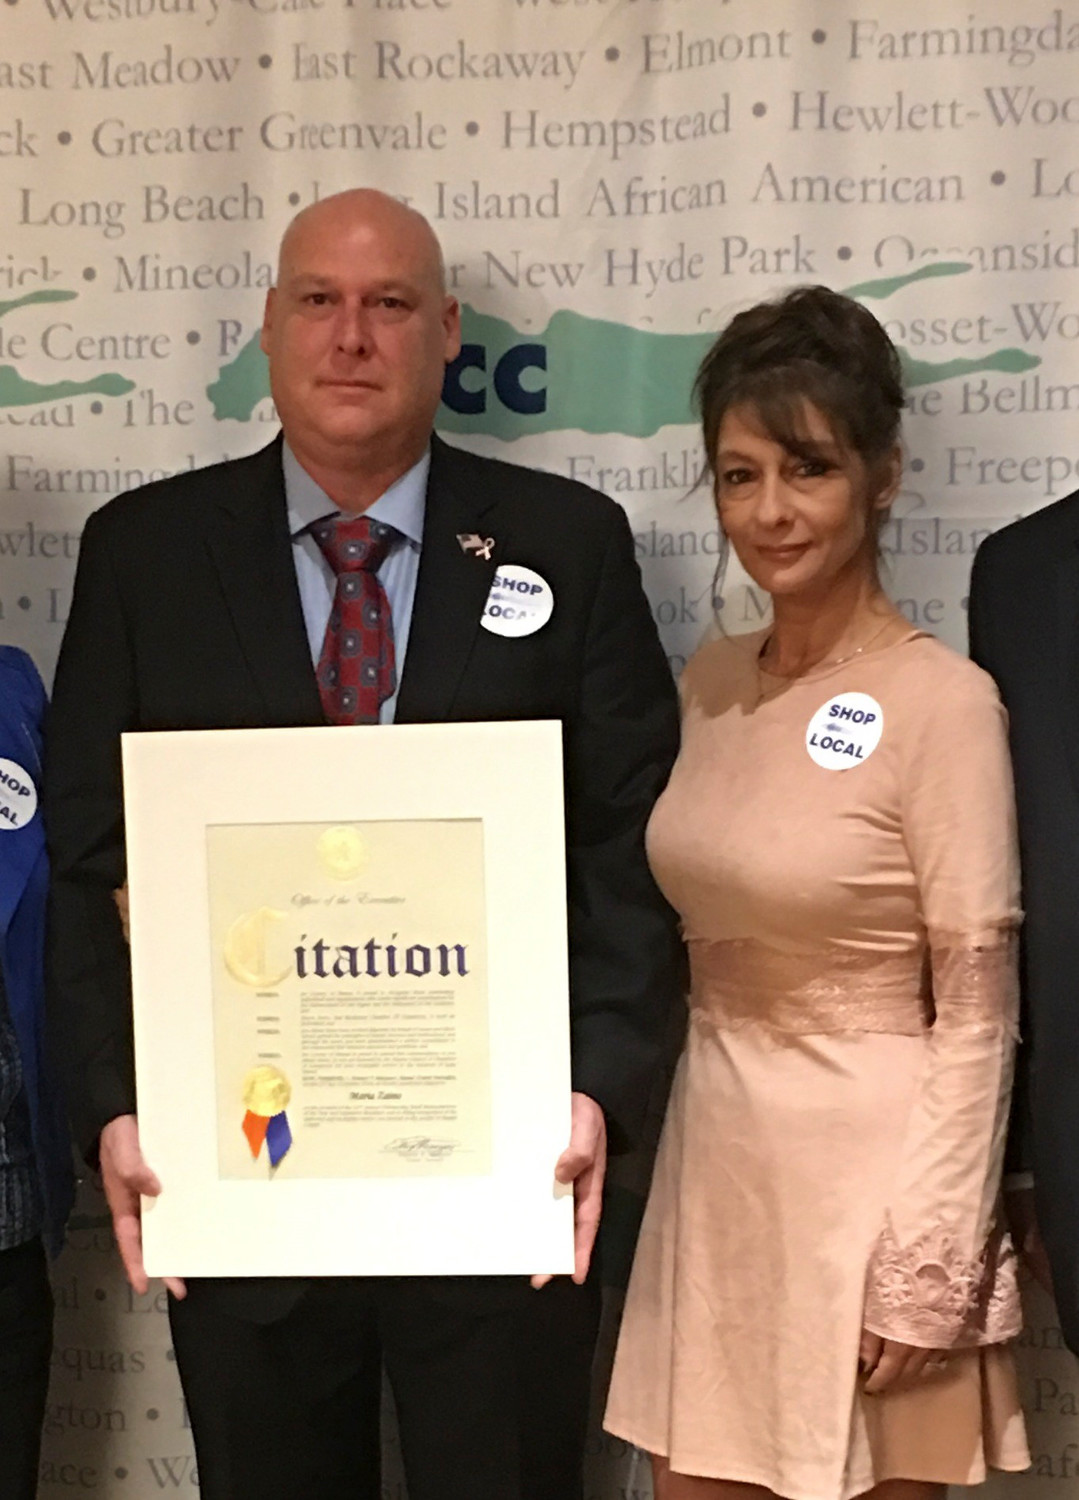 David O'Neill, pictured here with his wife, Claudine, was recognized as Small Businessperson of the Year in 2016 for his work as owner of Village Car Service. He sold the business in October.